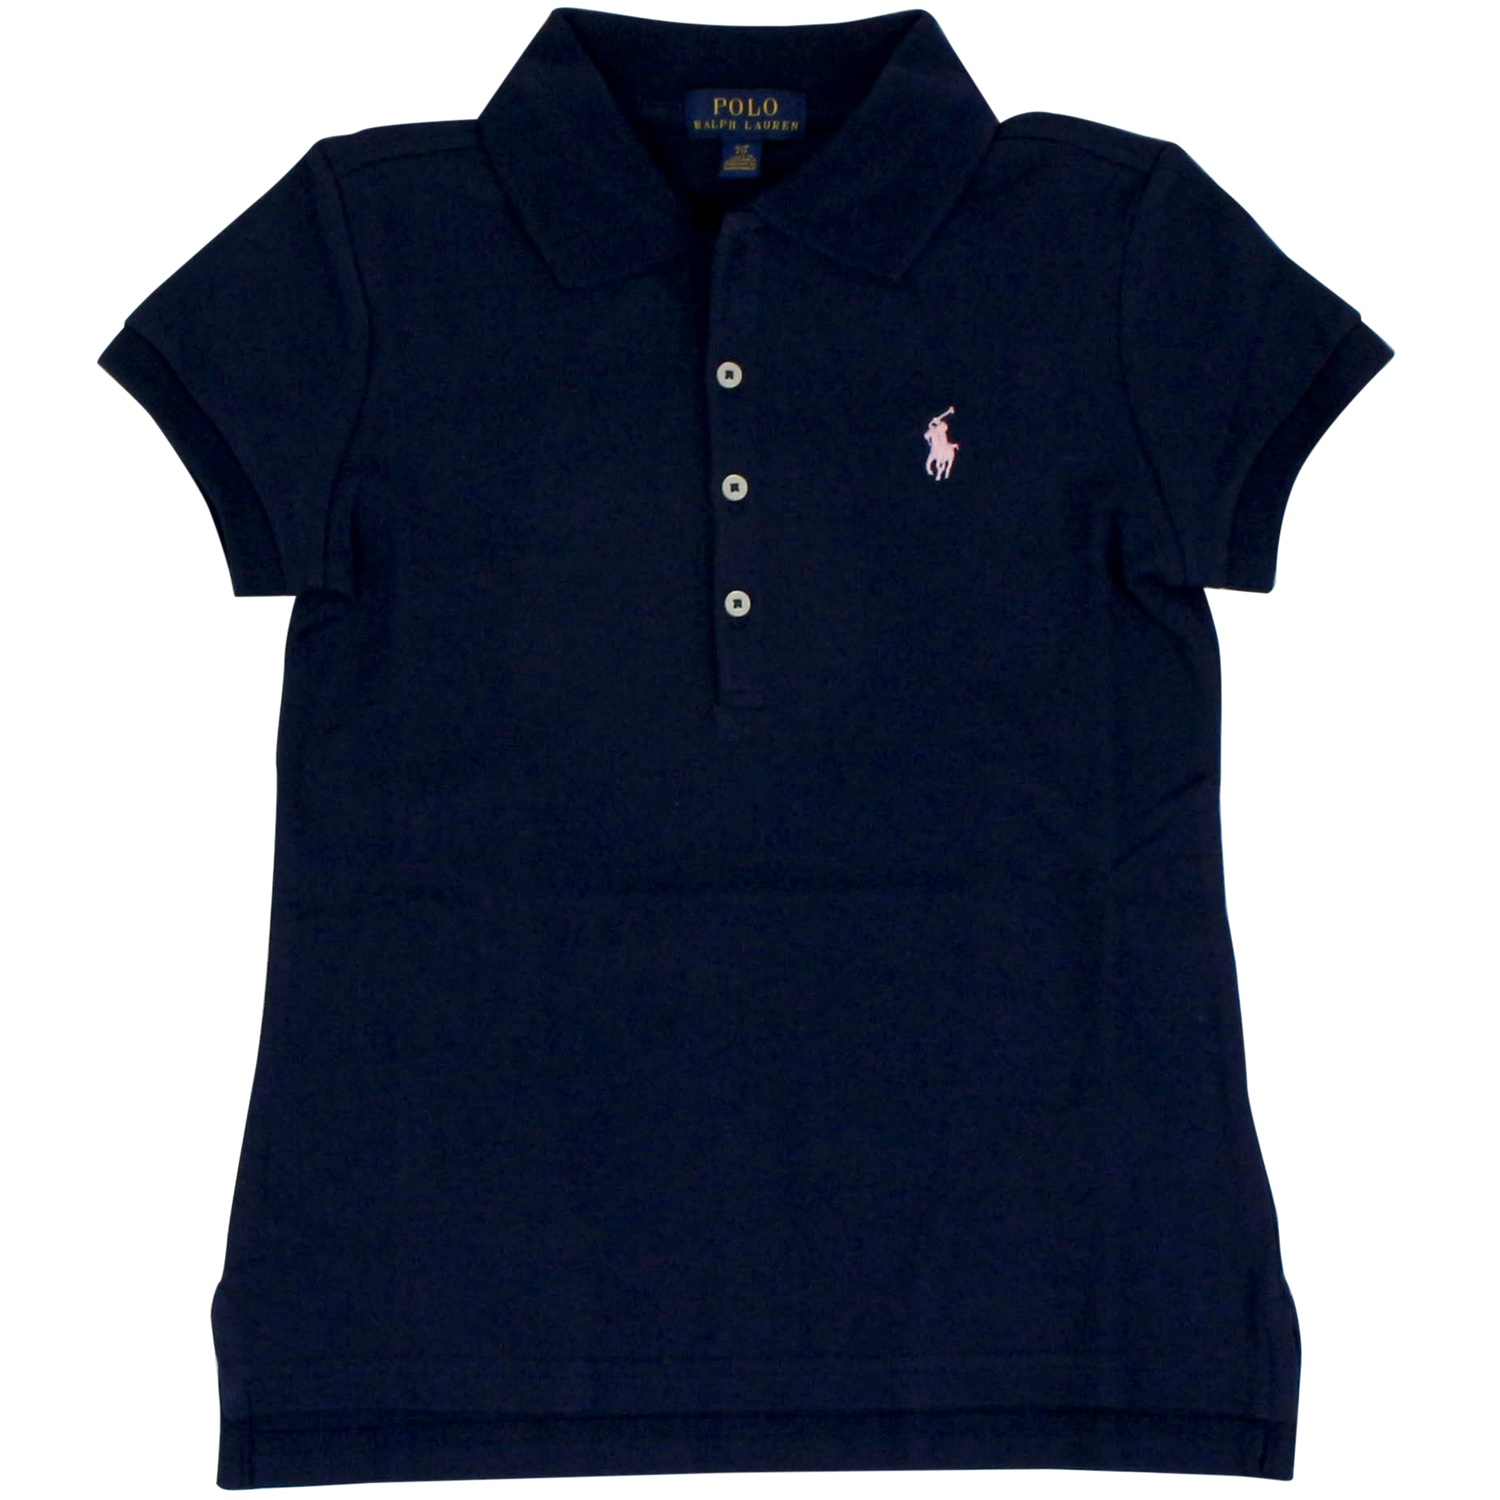 timeless design b96dc 11059 Polo in cotone stretch con logo